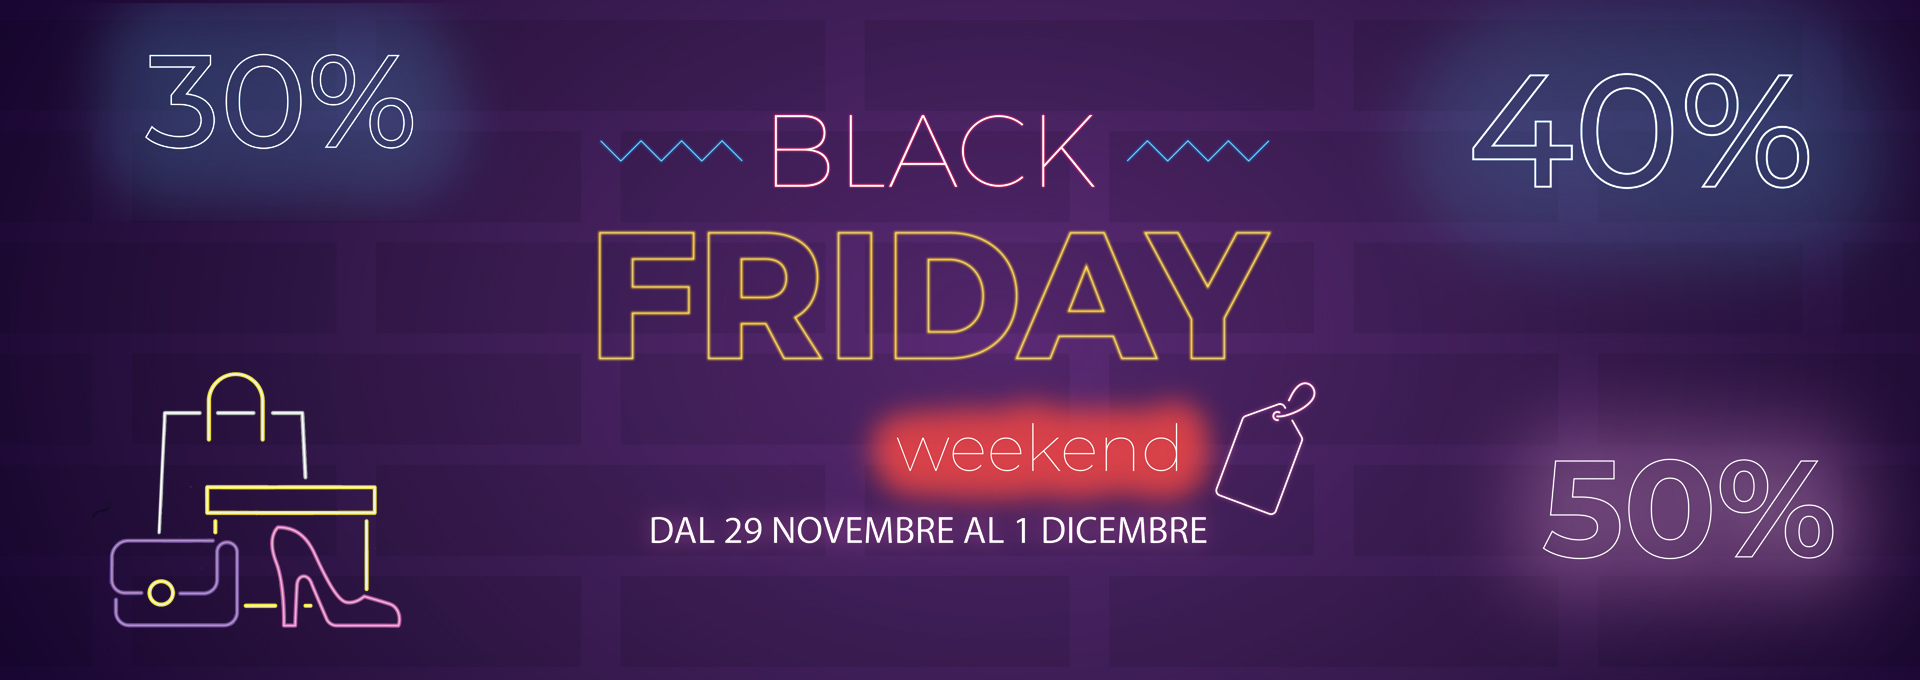 banner_BLACKFRIDAY